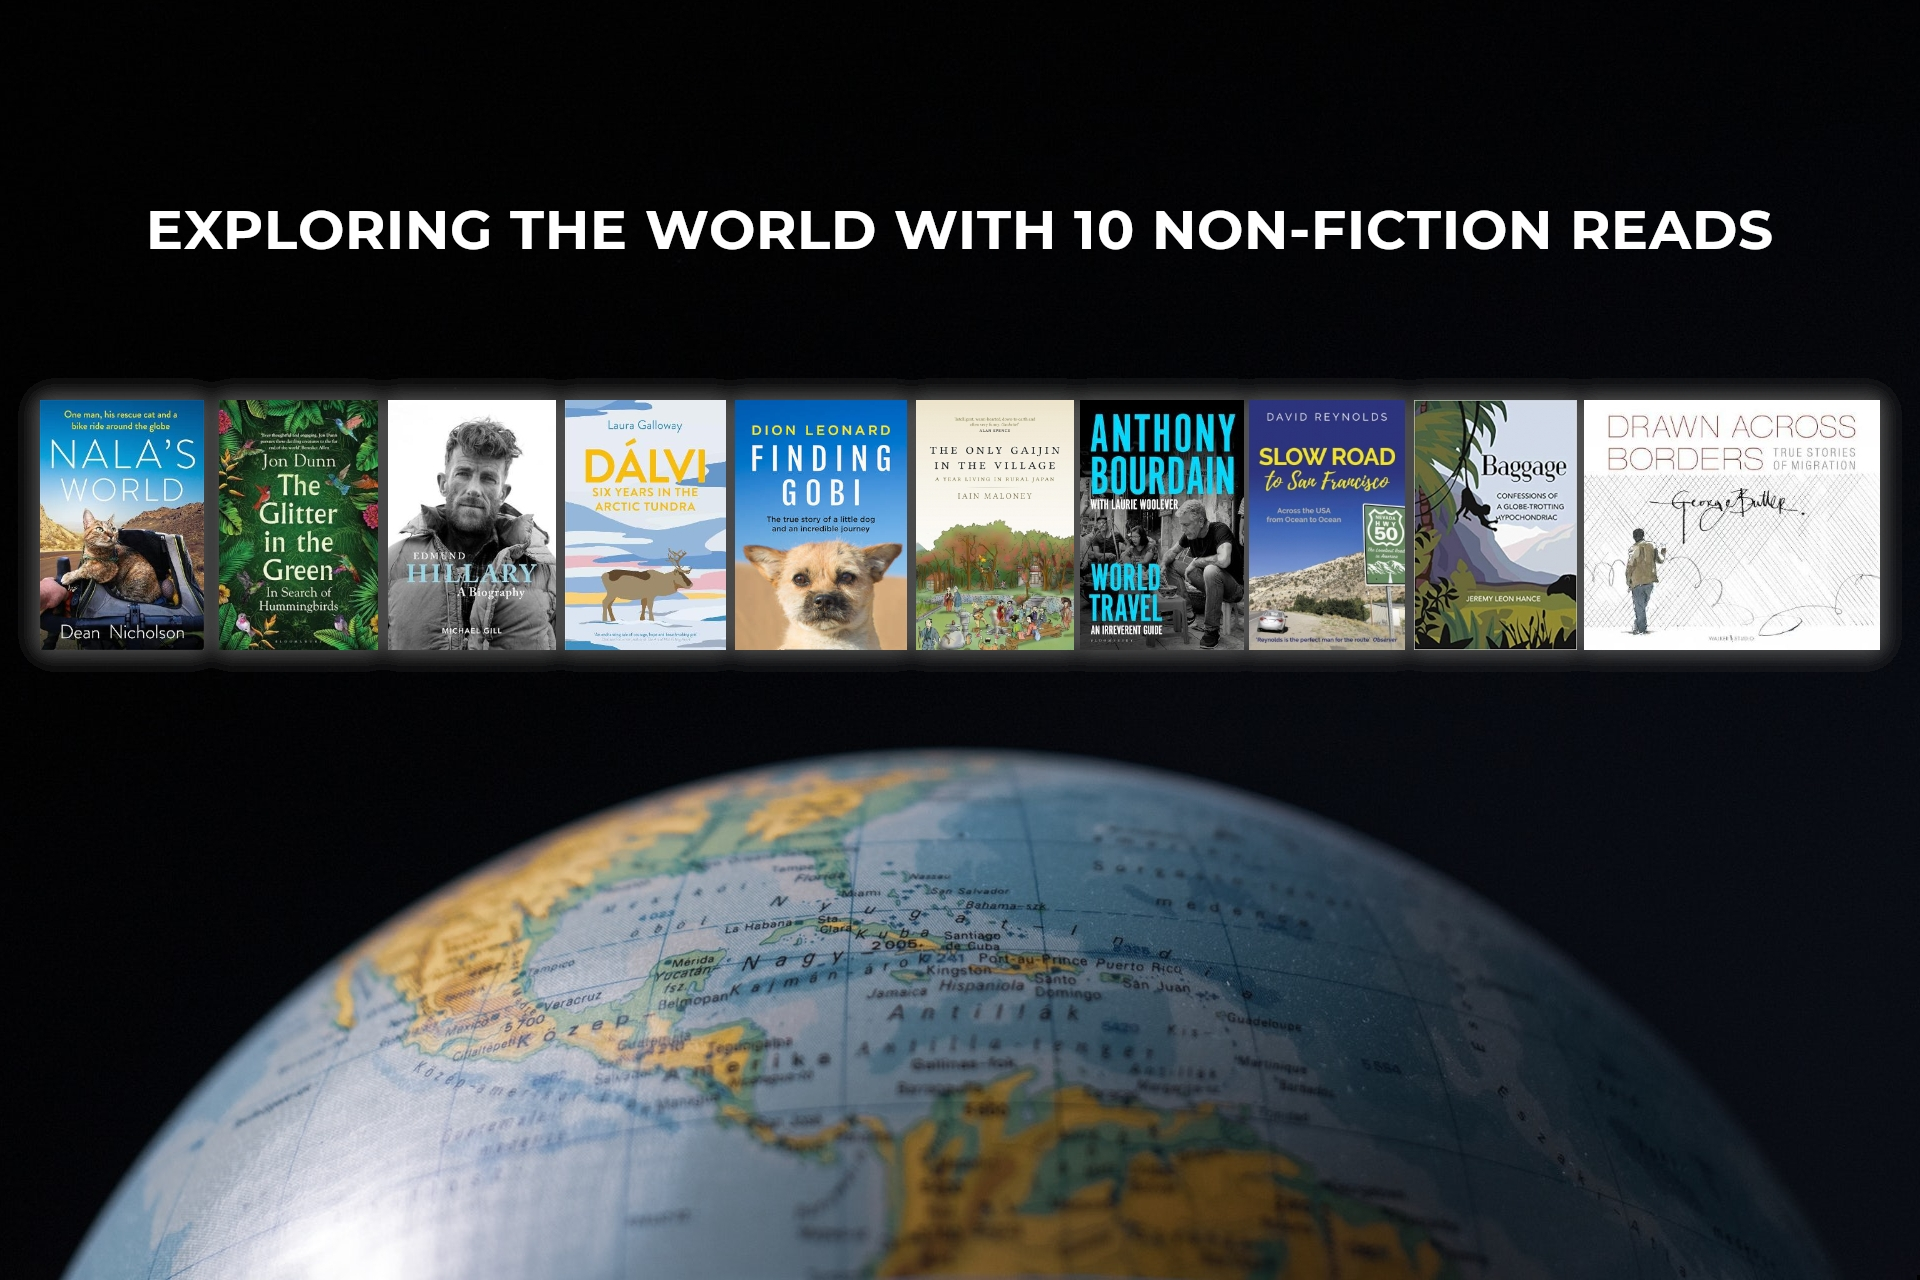 Exploring the World with 10 Non-fiction Reads